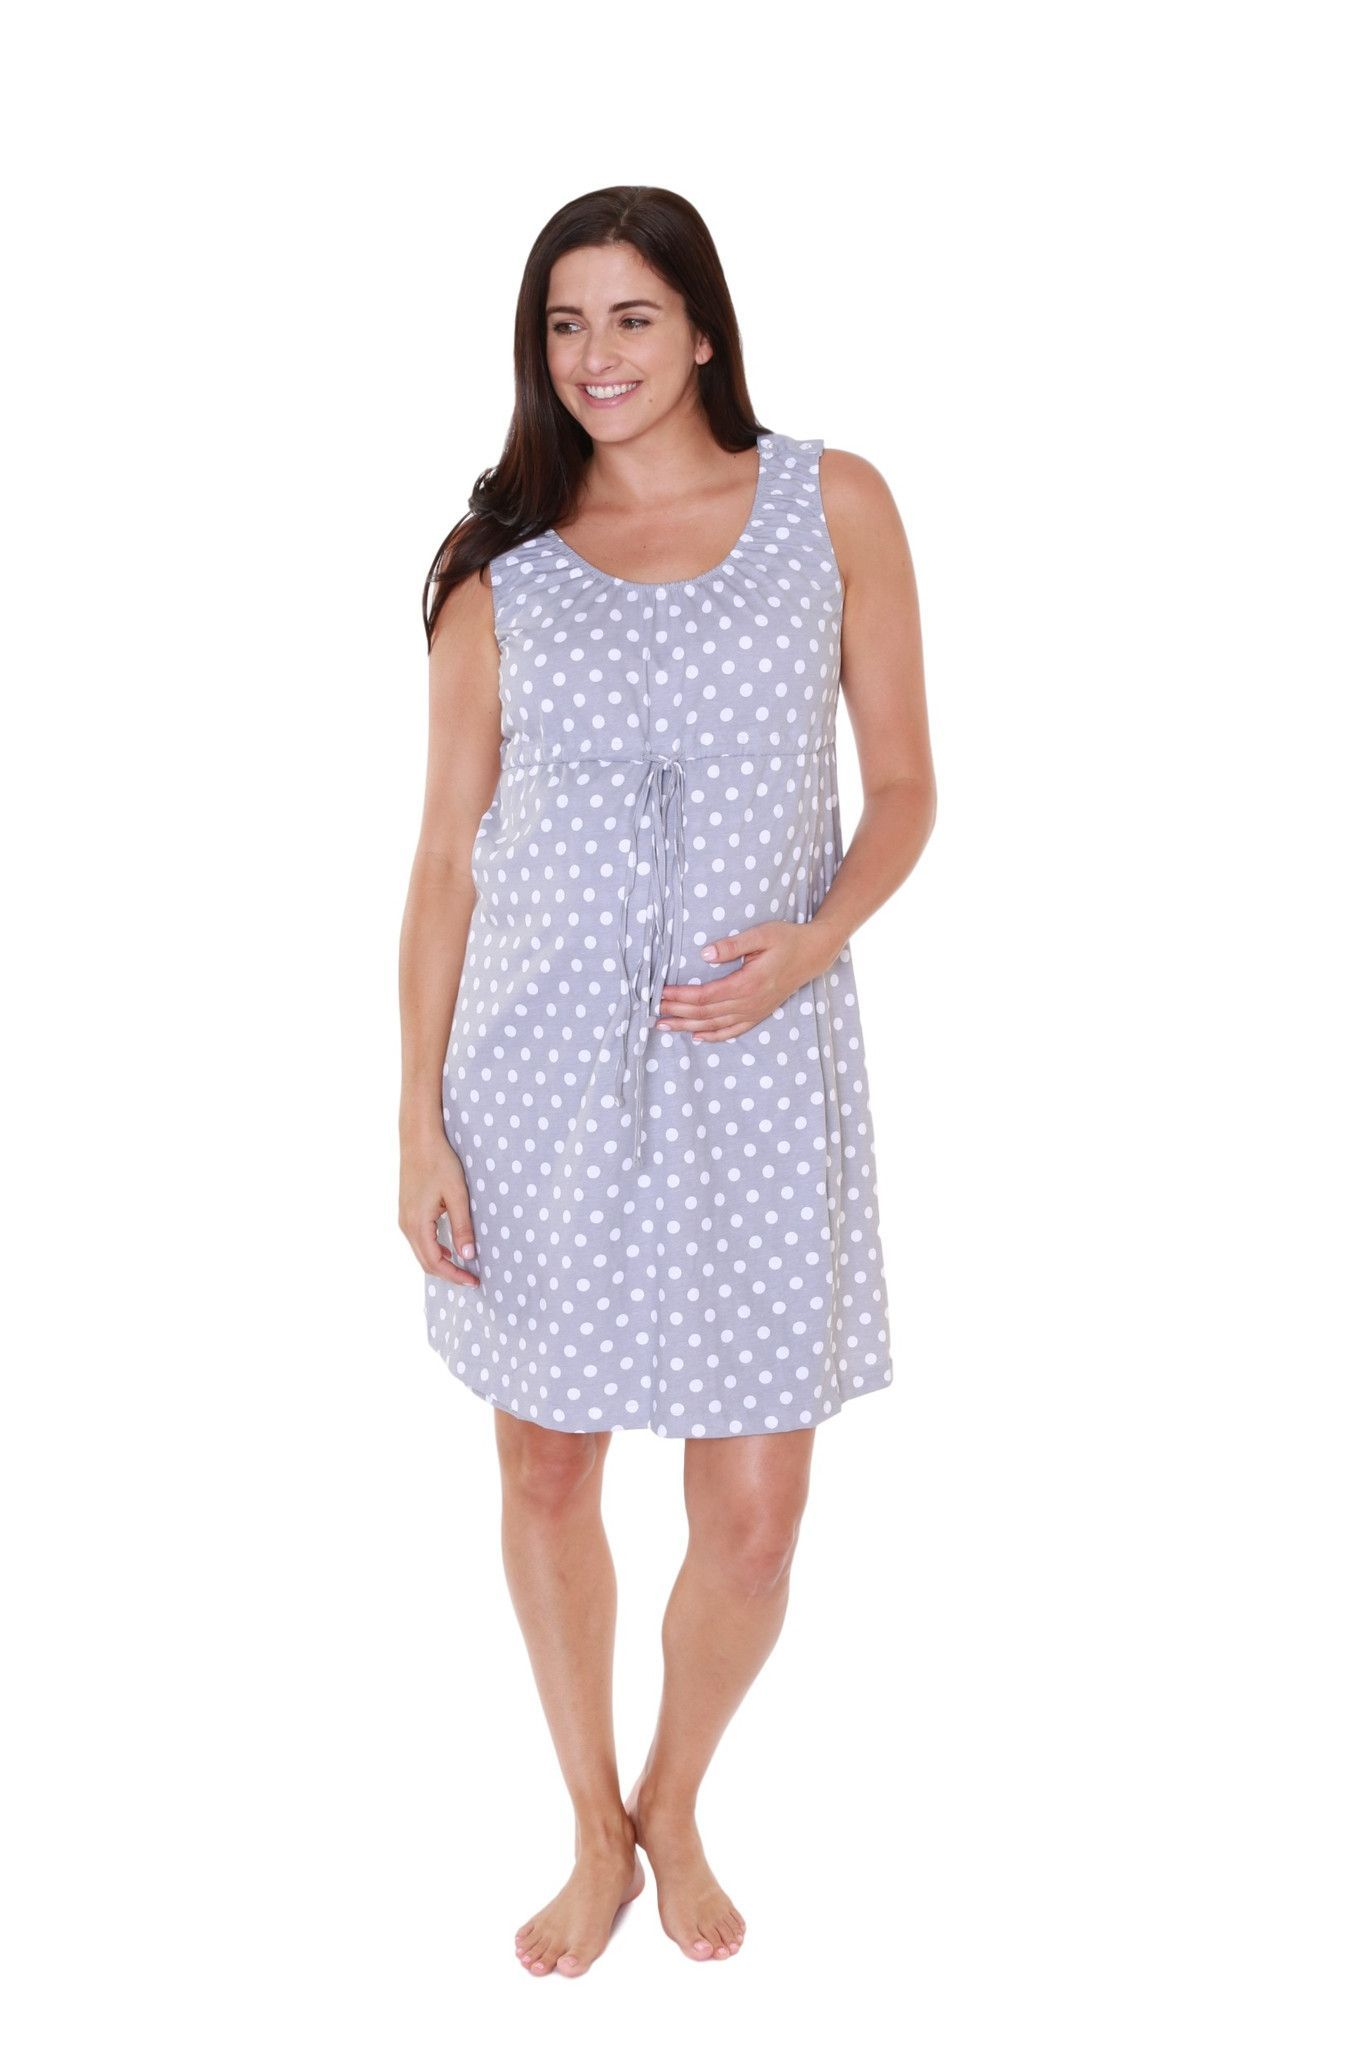 bf37be4d6d2 Lisa 3 in 1 Labor   Delivery   Nursing Birthing Hospital Gown Grey Dotted